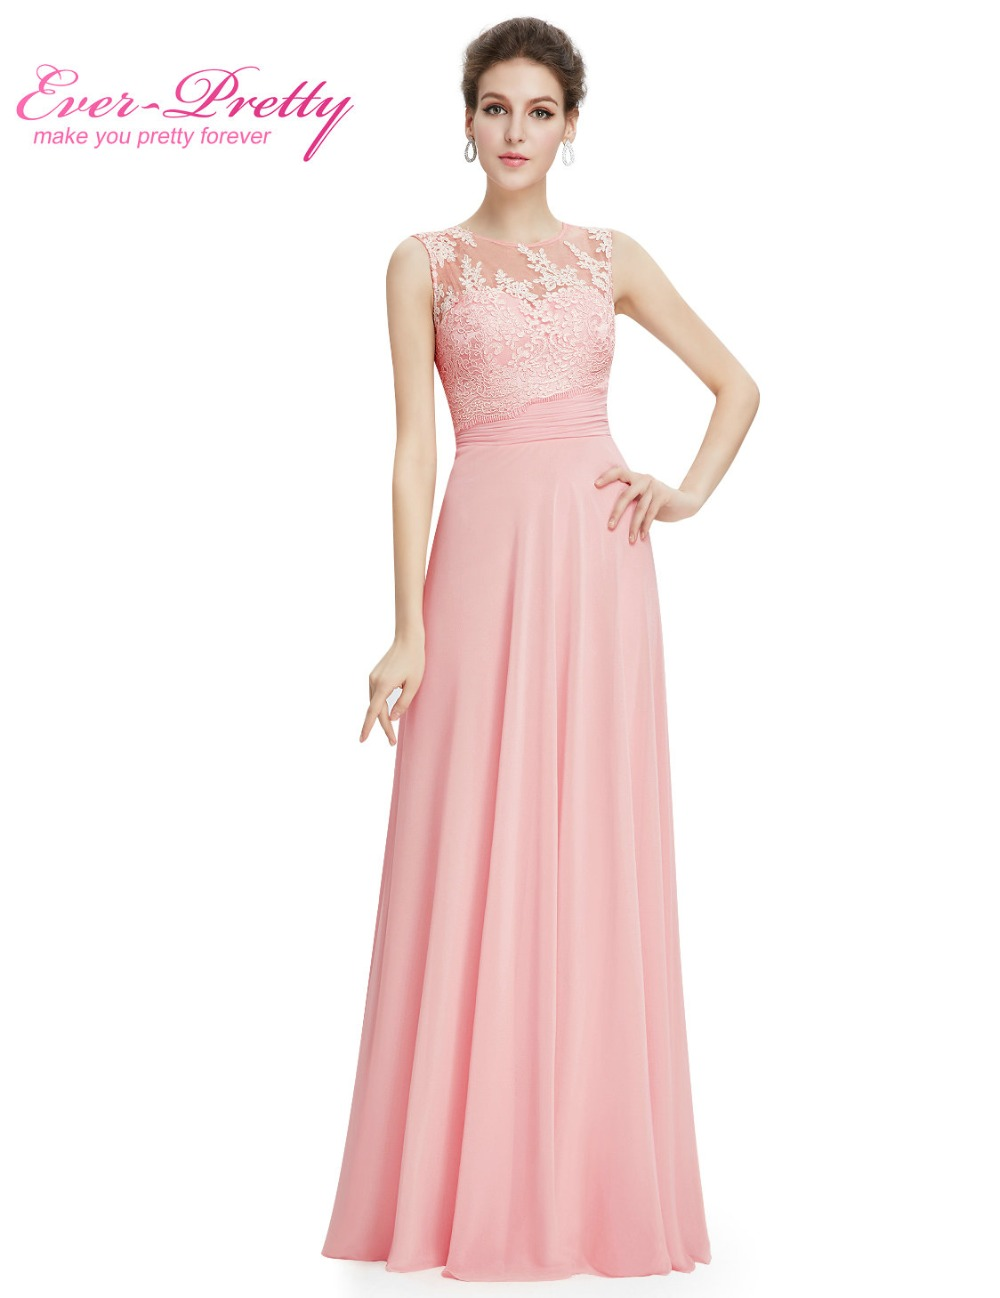 Elegant light pink chiffon long bridesmaid dresses ep08760 2017 elegant light pink chiffon long bridesmaid dresses ep08760 2017 vestido formal dress floor length sleeveless bridesmaid dresses in underwear from mother ombrellifo Images